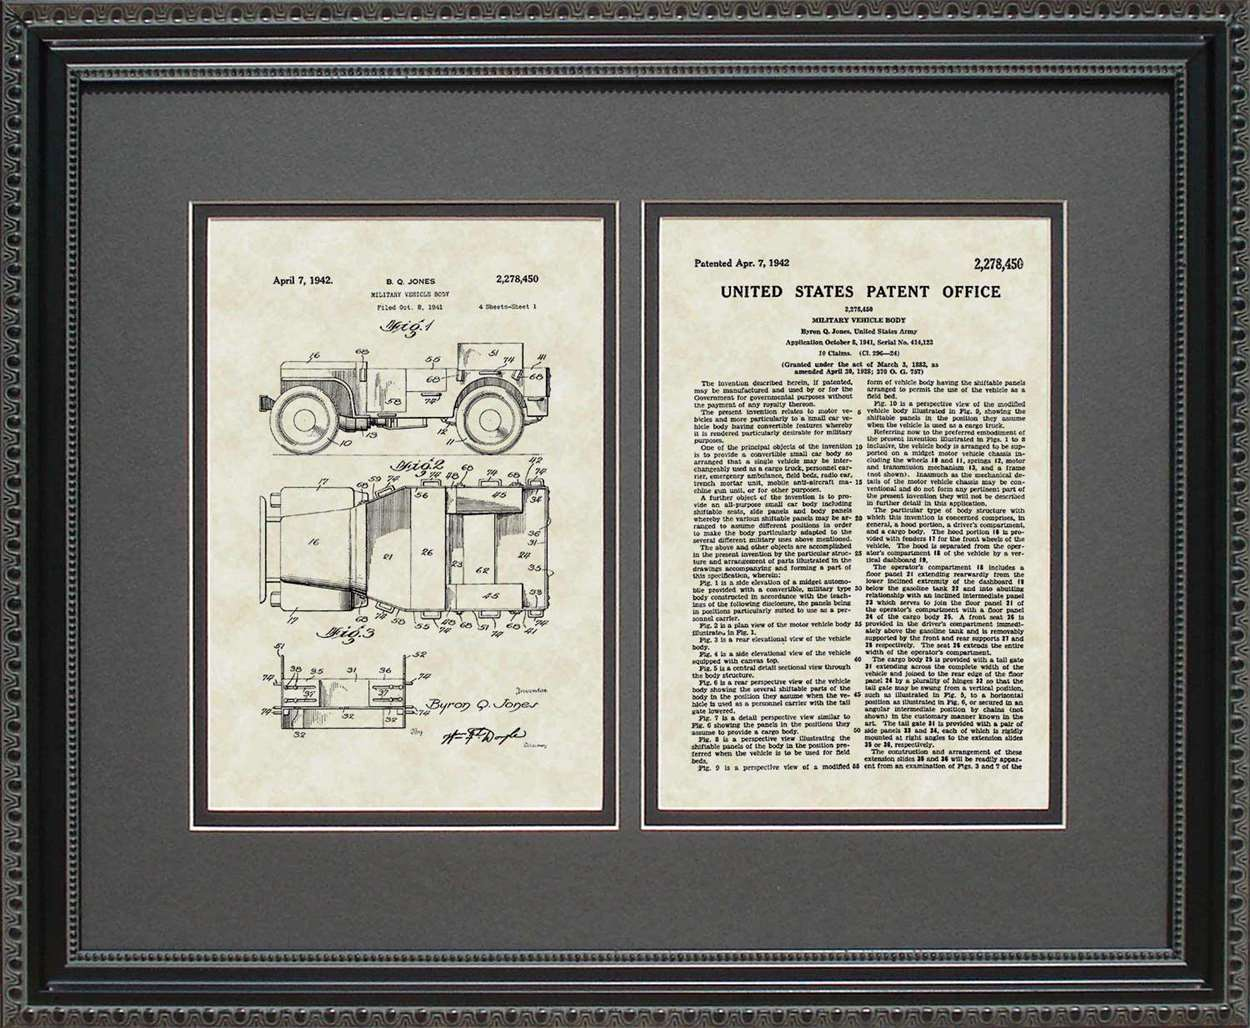 Jeep Willys Patent, Art & Copy, Jones, 1942, 16x20